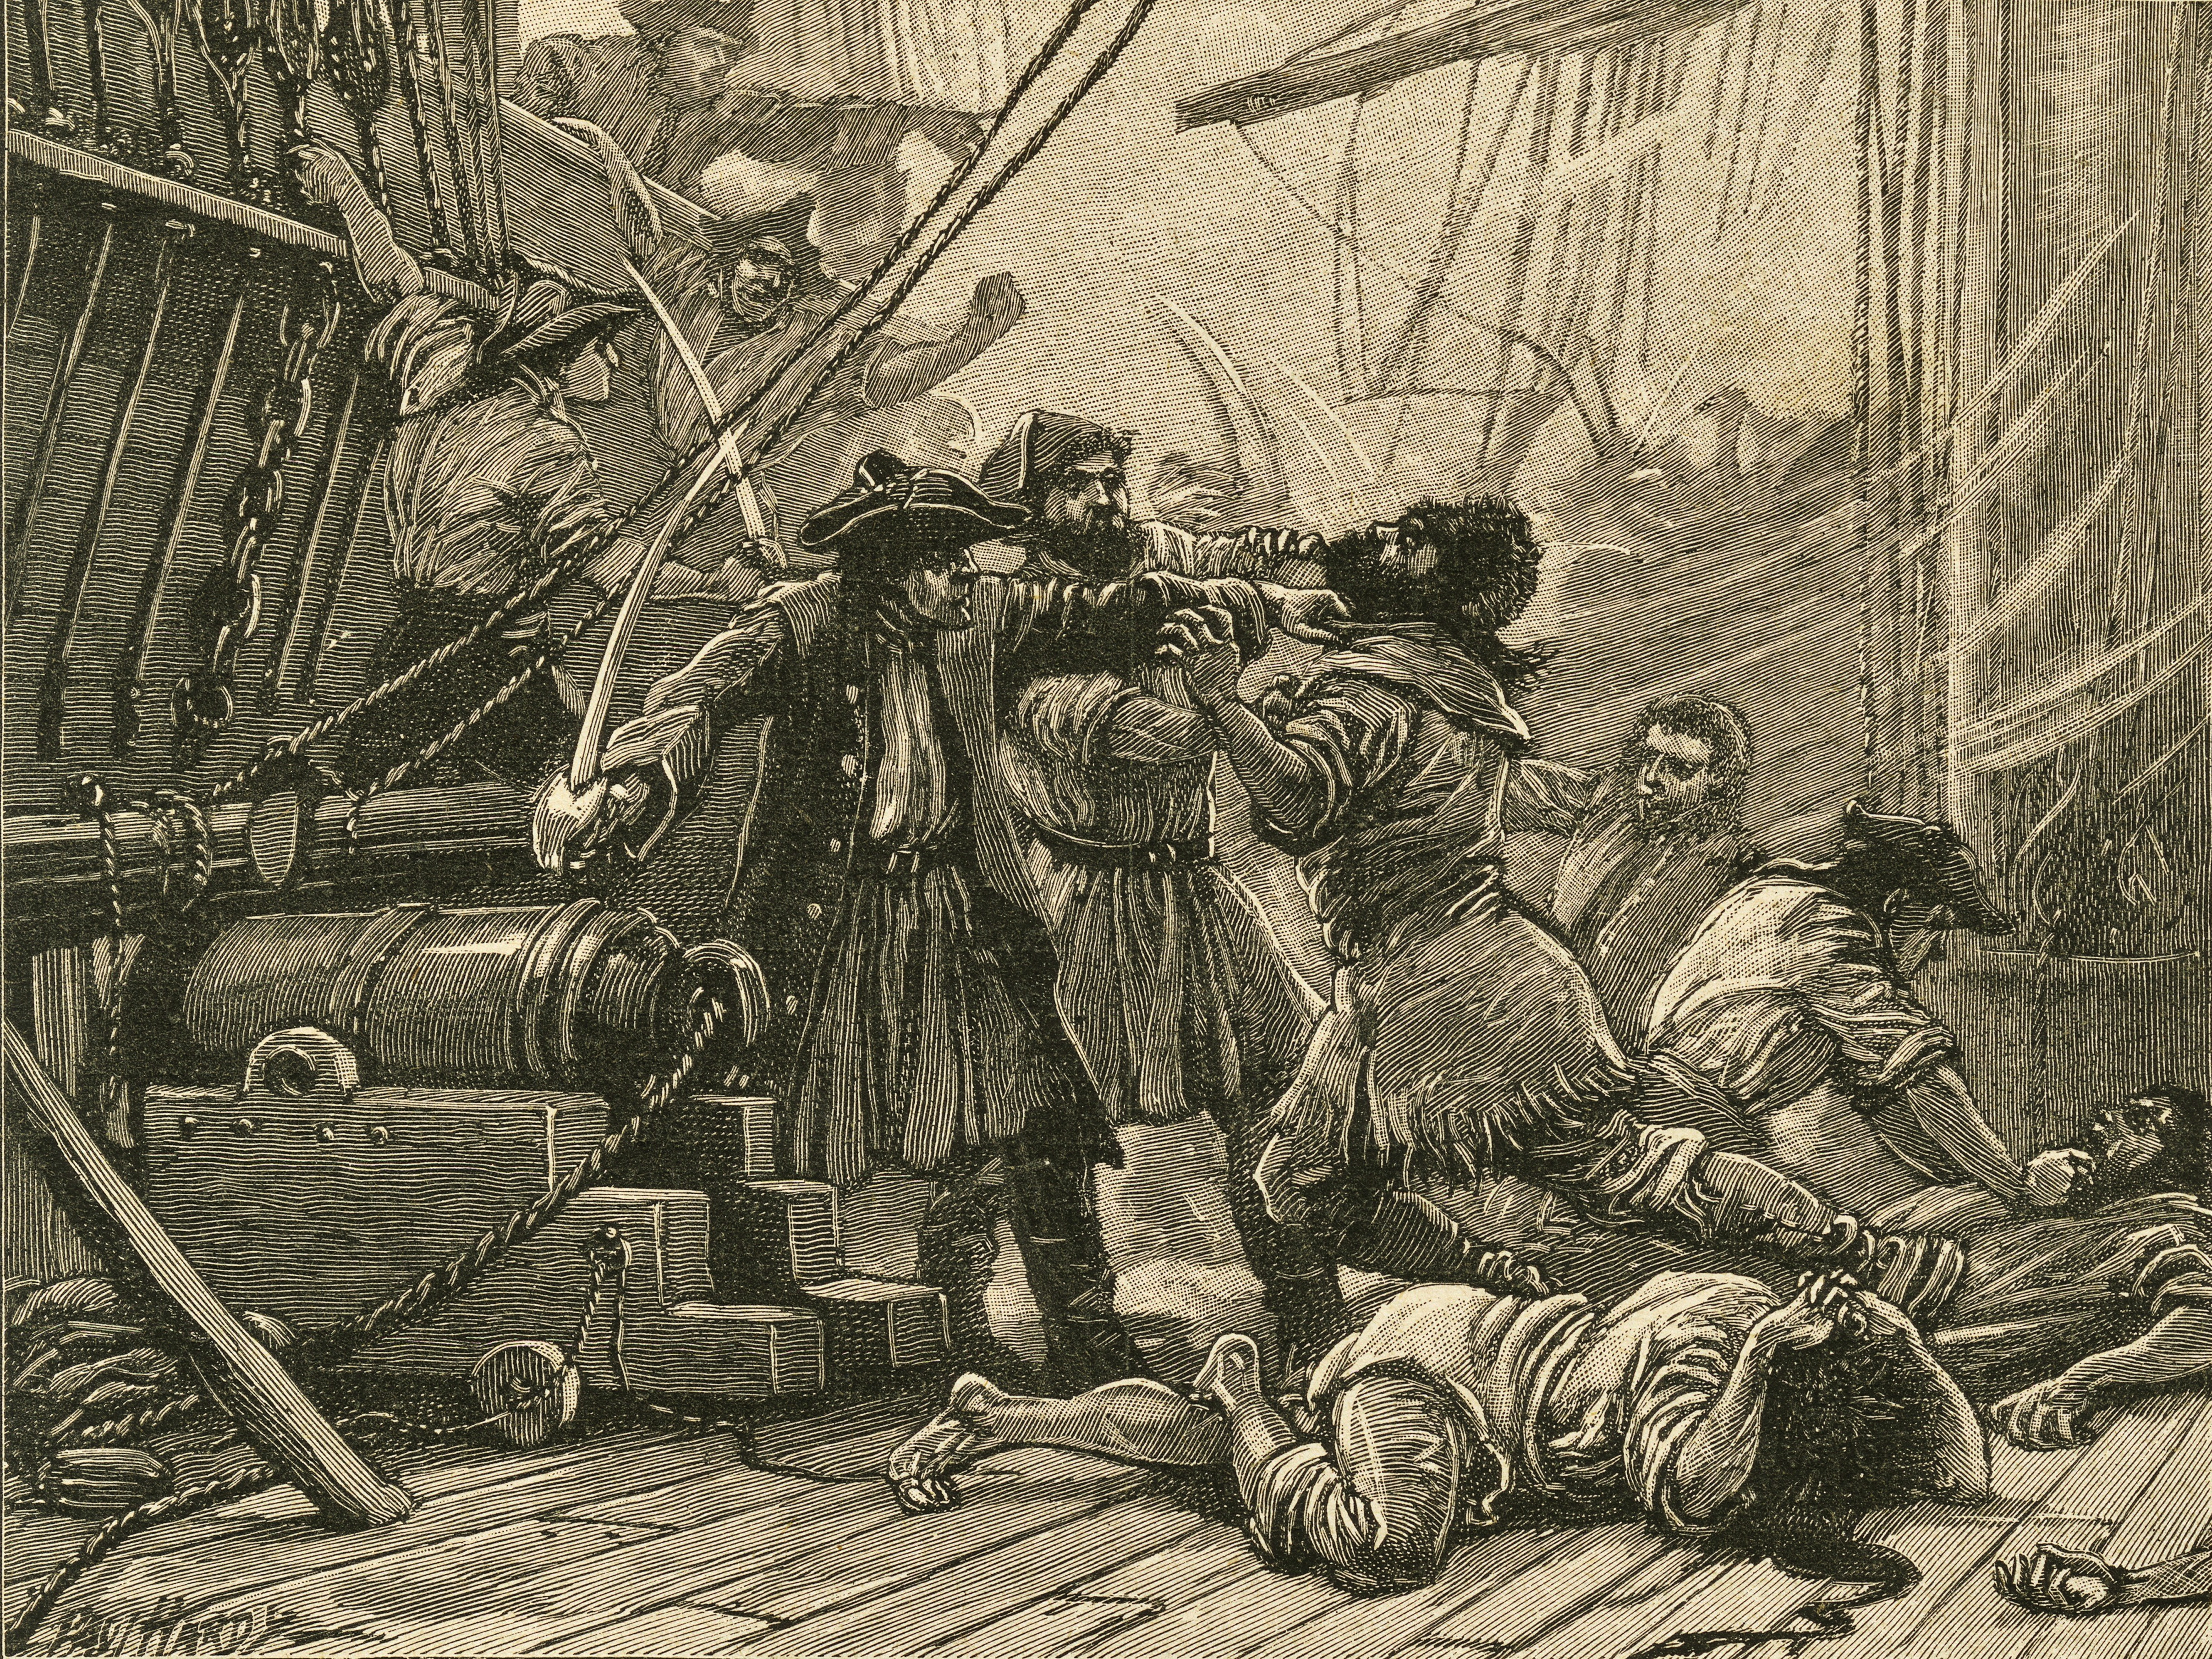 Pirates boarding a ship and overpower the crew -- 18th century.